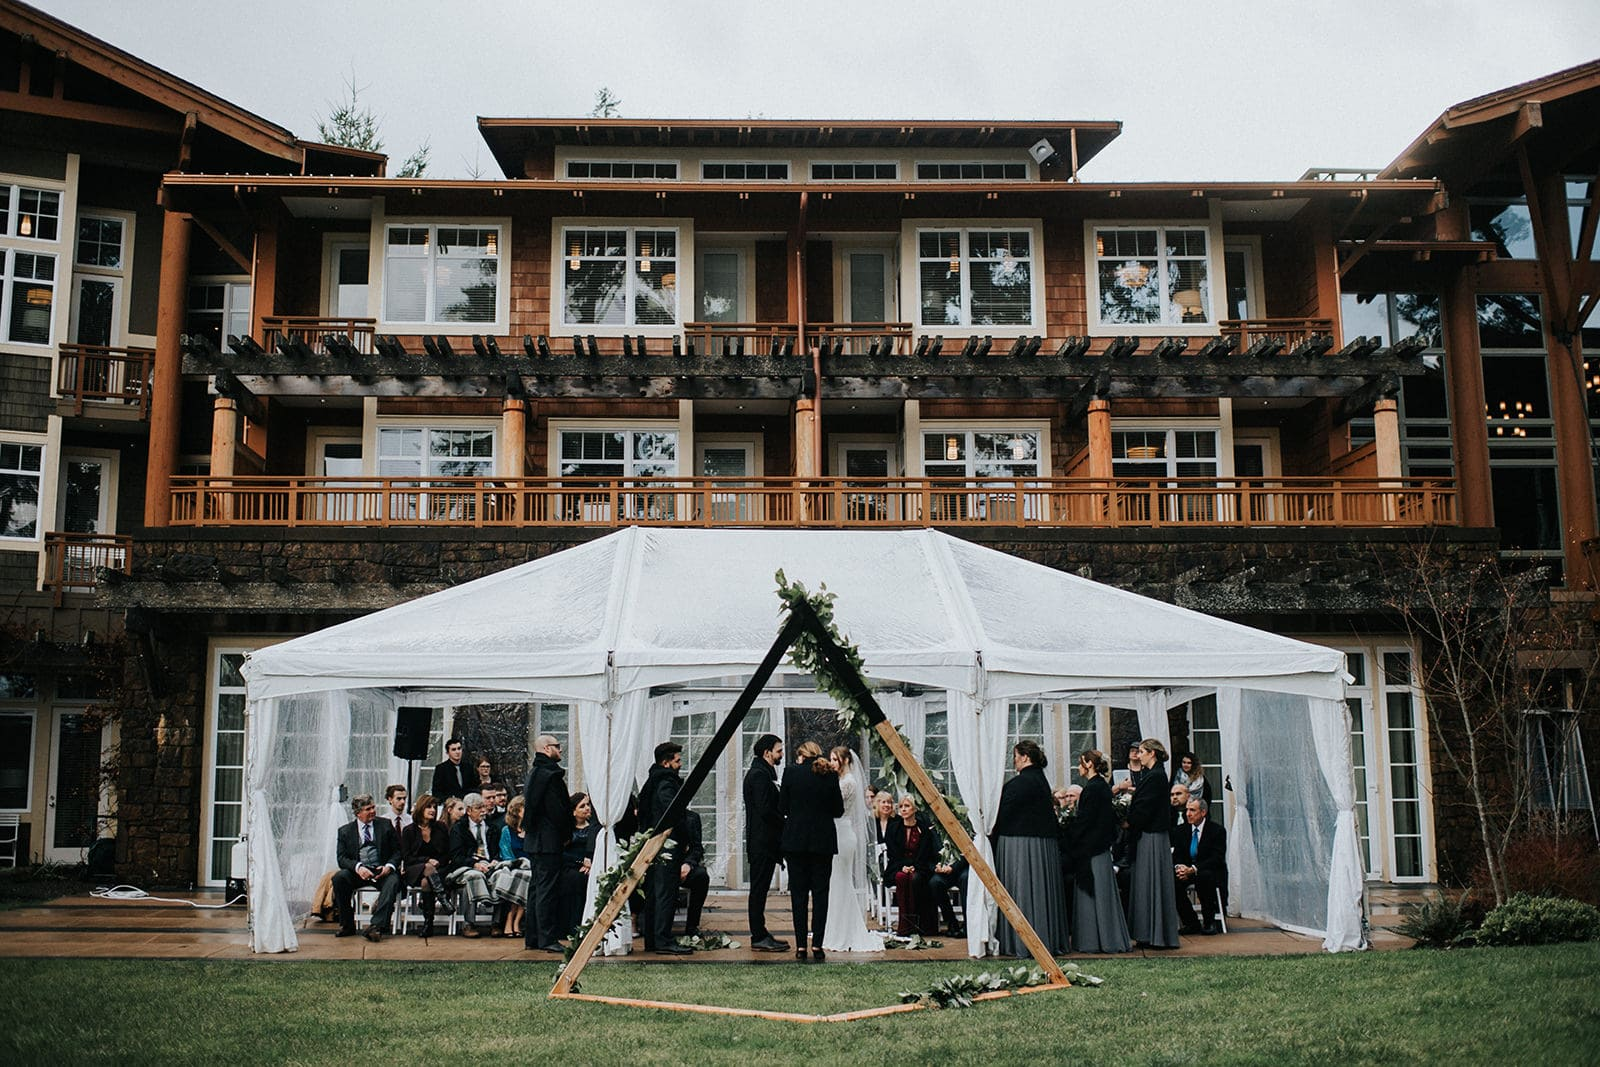 rainy tented wedding ceremony at alderbrook